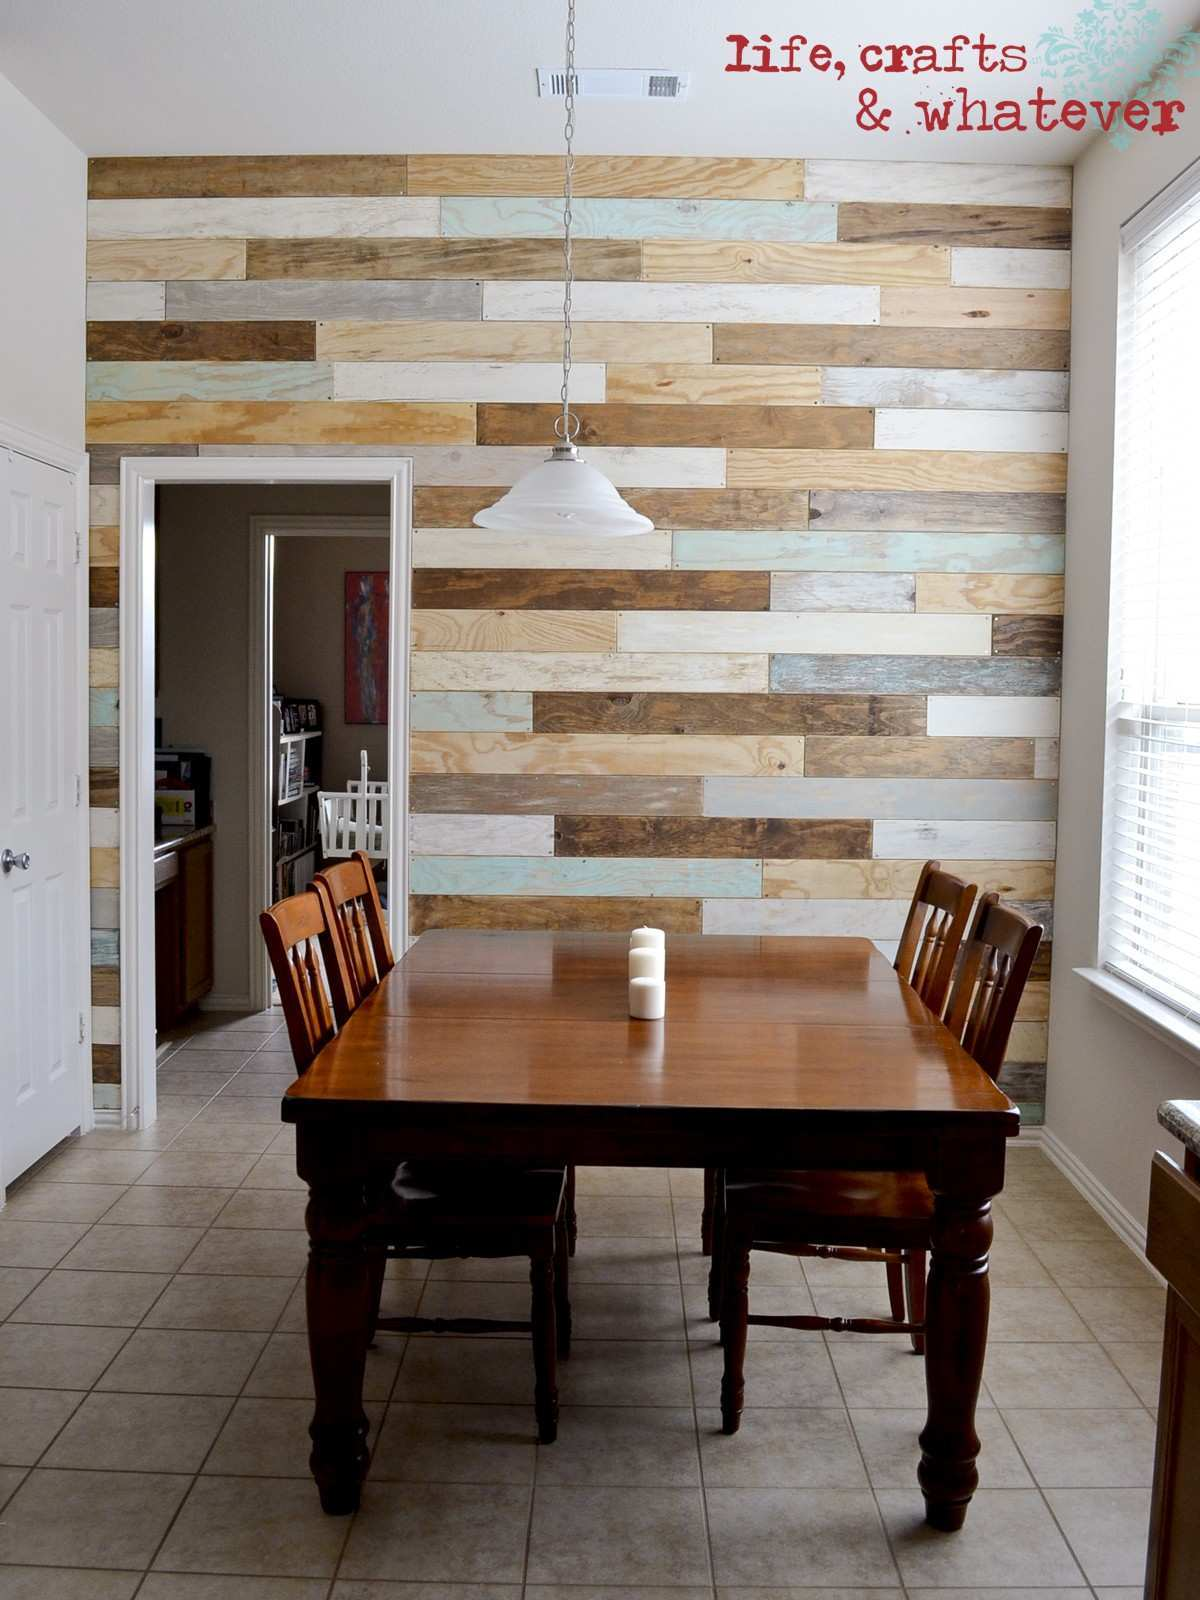 Life Crafts & Whatever My plank wall finally